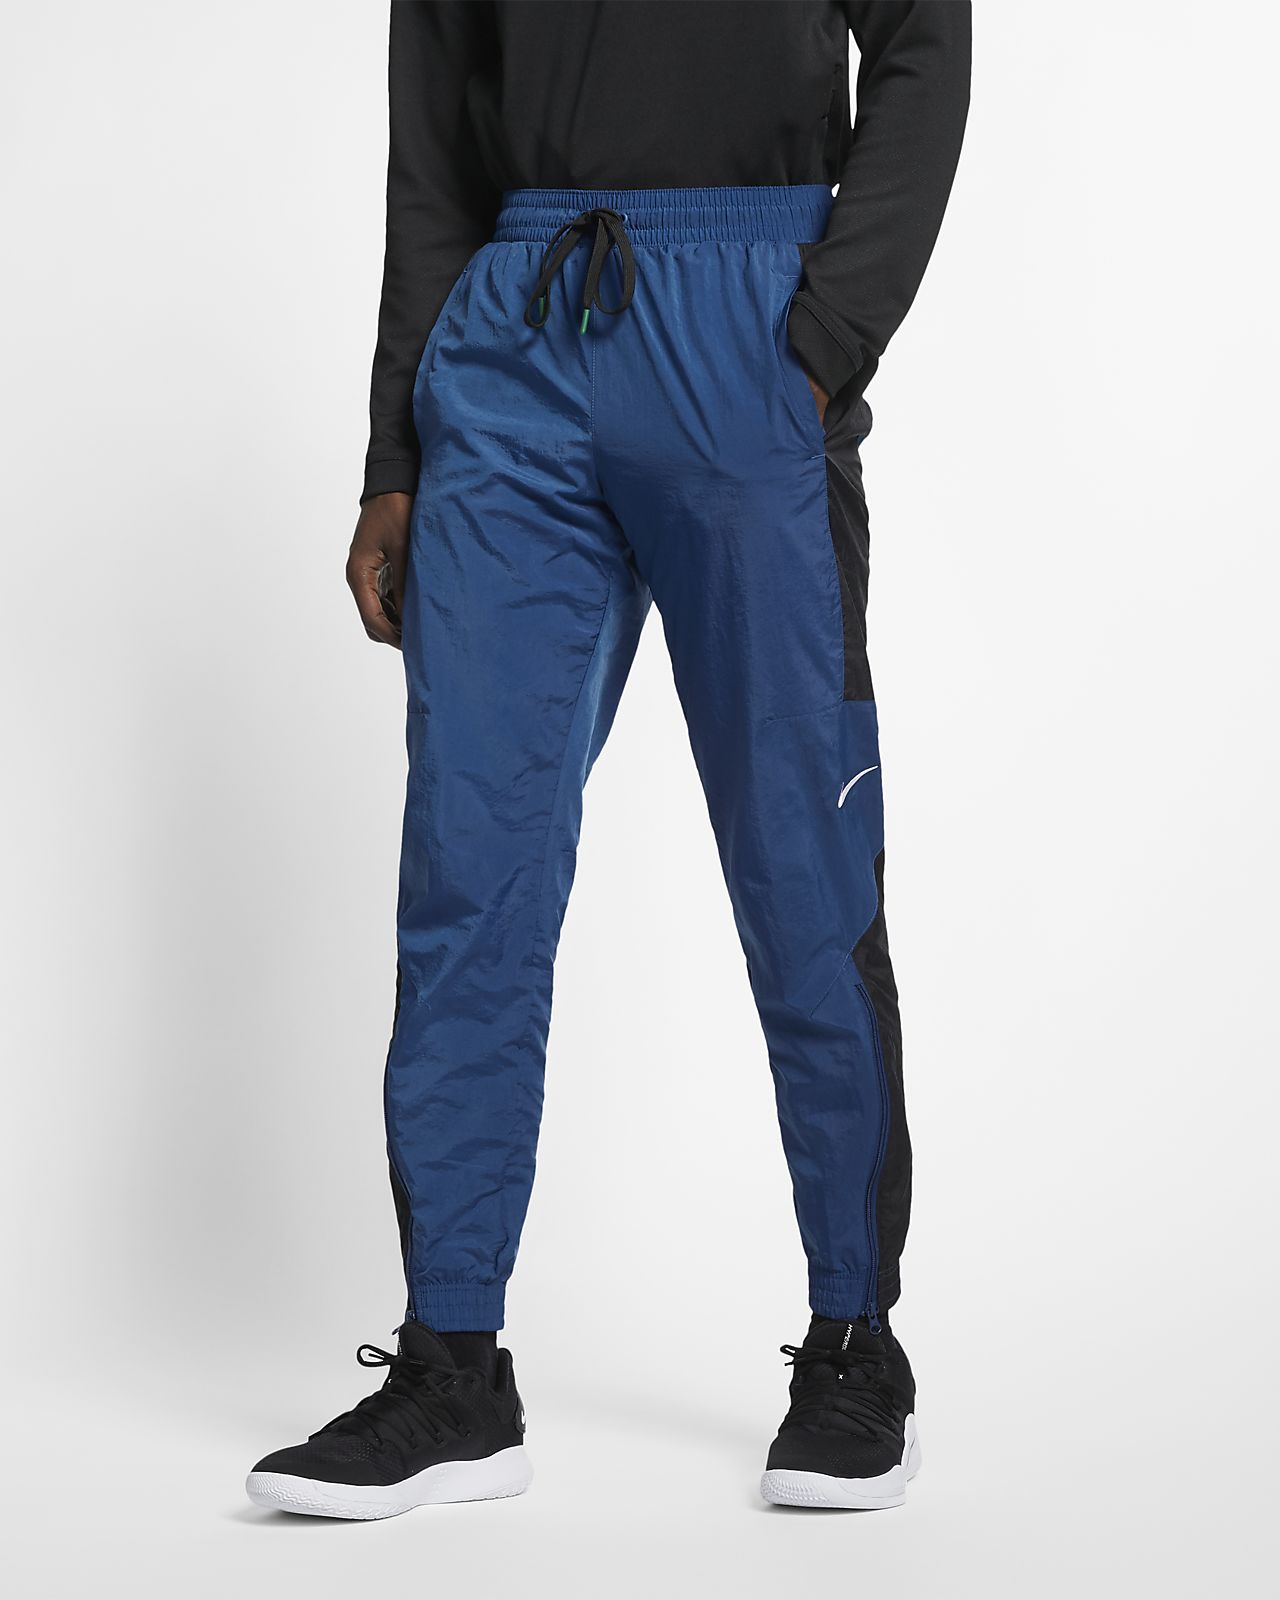 d876d0230280 Low Resolution Nike Men s Basketball Pants Nike Men s Basketball Pants